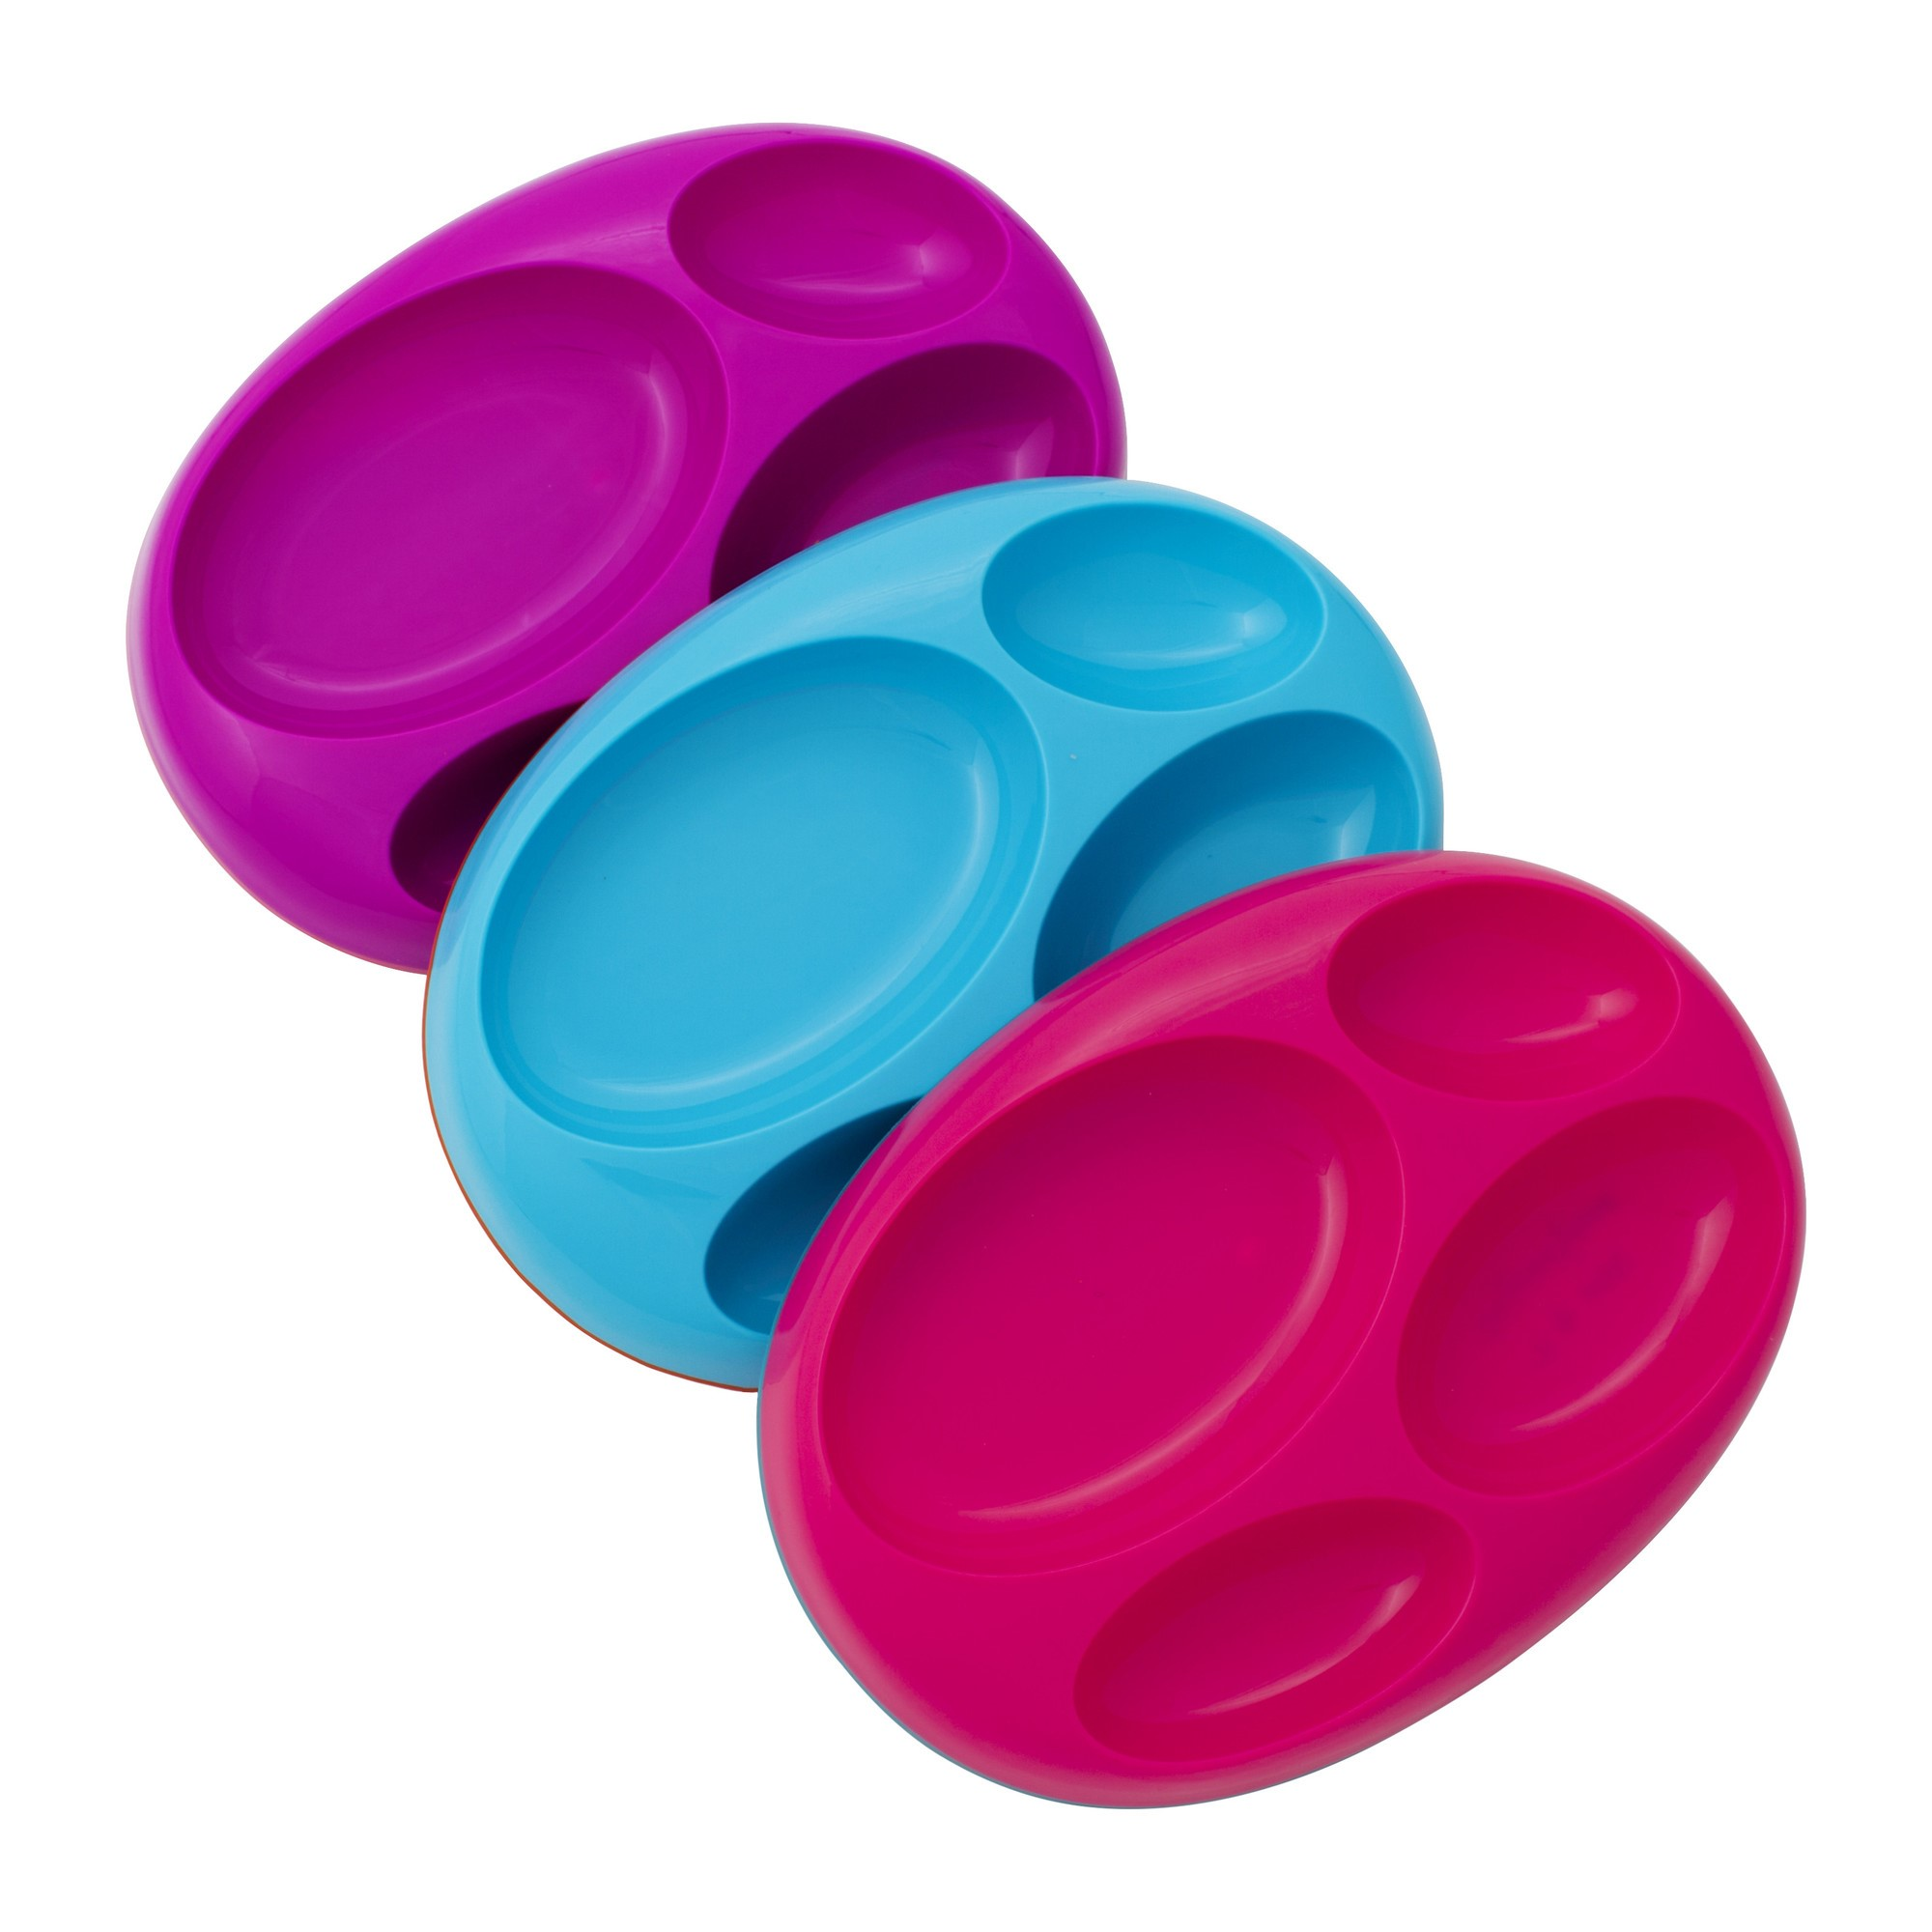 BOON Edgeless divided Platter - Purple/Blue/Pink.- Girl - 3pk